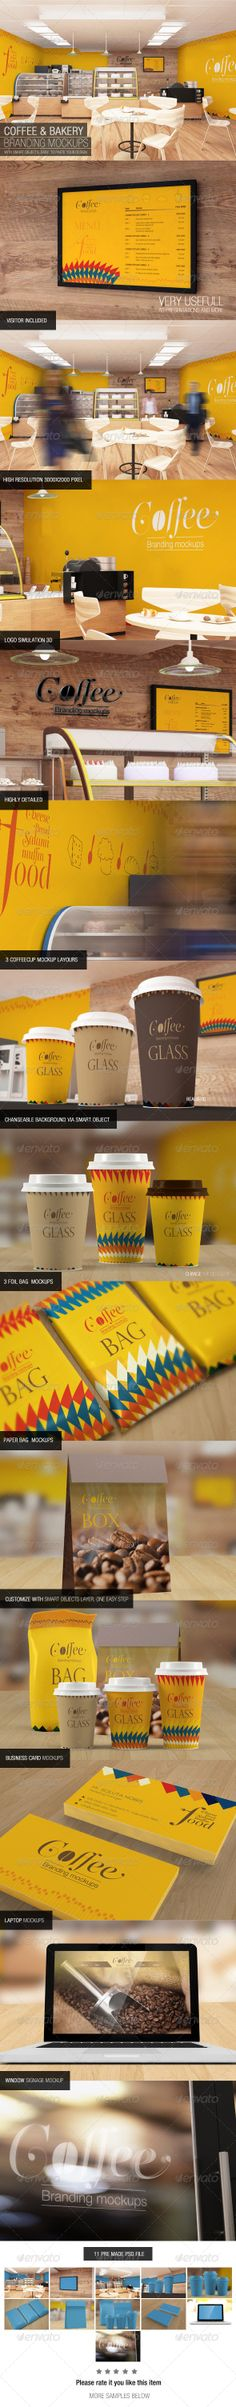 With smart objects, easy to paste your design 11 Pre made psd file Visitor Included Logo Simulation 3D High resolution 3000×2000 pixel (300dpi) Highly detailed texture Reflection of the artwork on the wall, coffee cups and the panel 3 Coffee cup mockup layouts Change the lid color Realistic dept of field 3 Foil bag mockup Business card mockup Laptop mockup Window signage mockup Changeable background via smart object Included help file